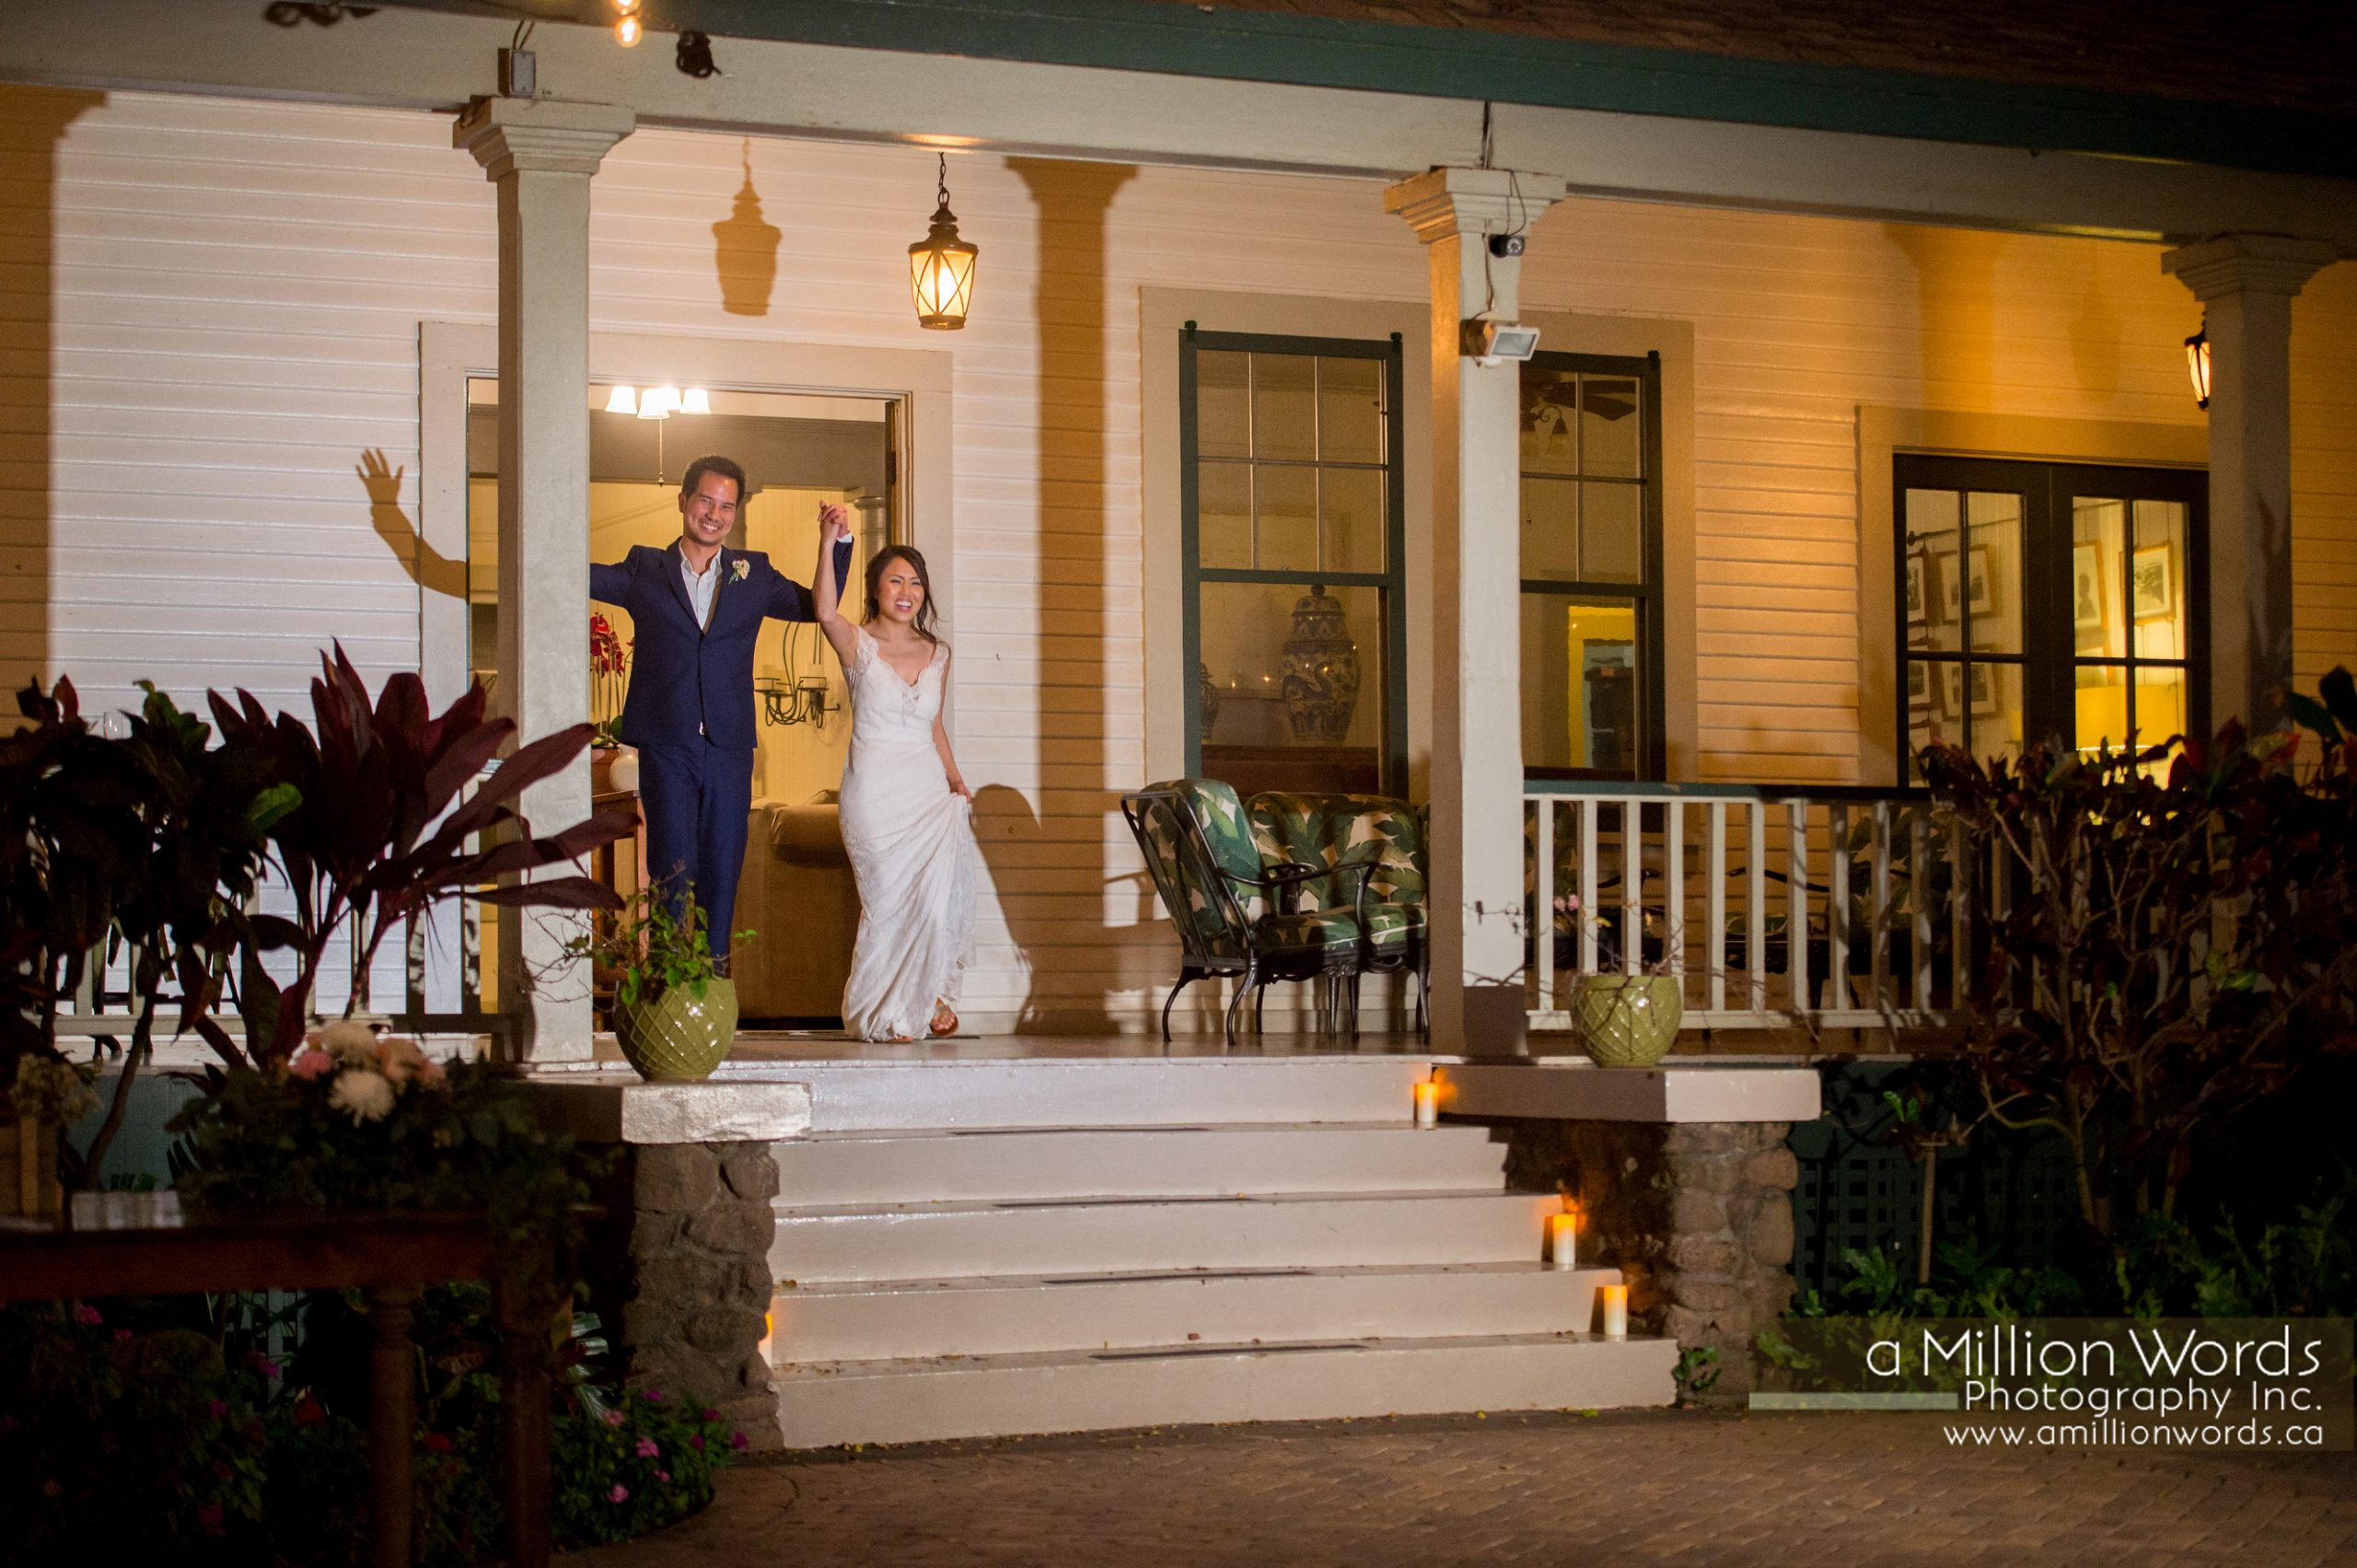 kw_destination_wedding_photography48